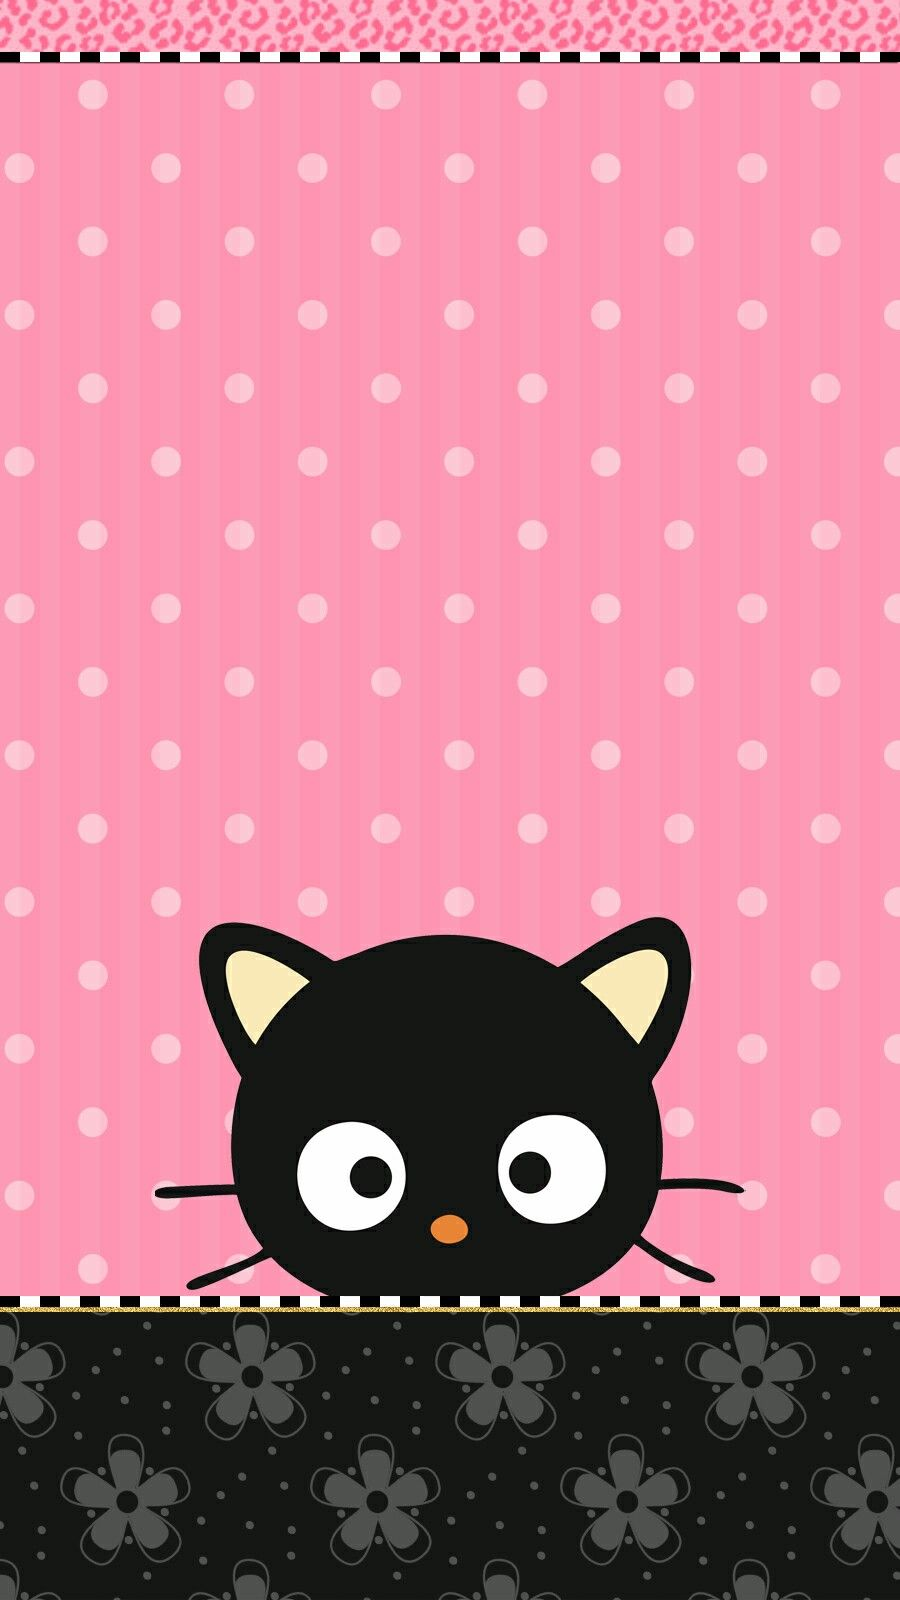 chococat #wallpaper #iphone #pink | Cute walls by me♡ | Pinterest ...